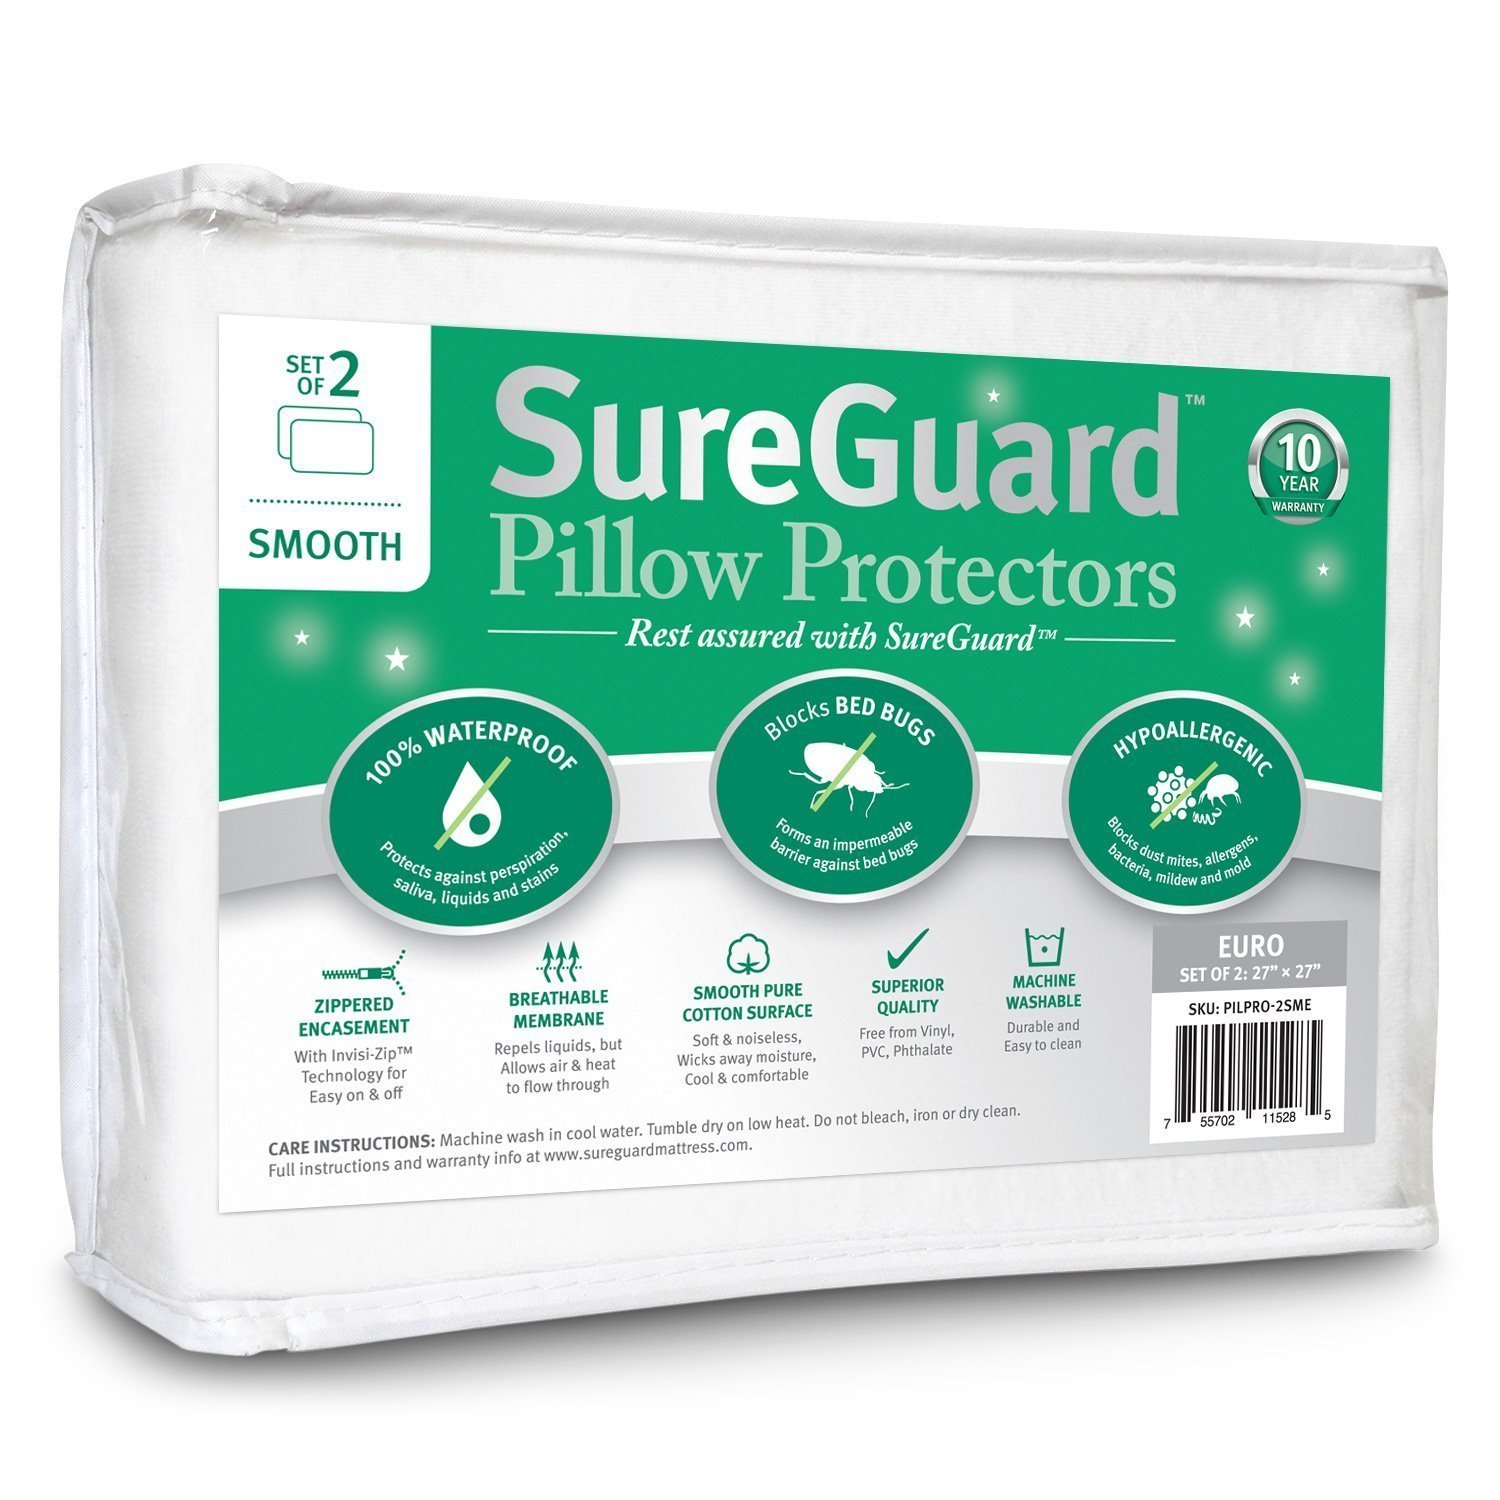 Set Of 2 Smooth Sureguard Pillow Protectors Home